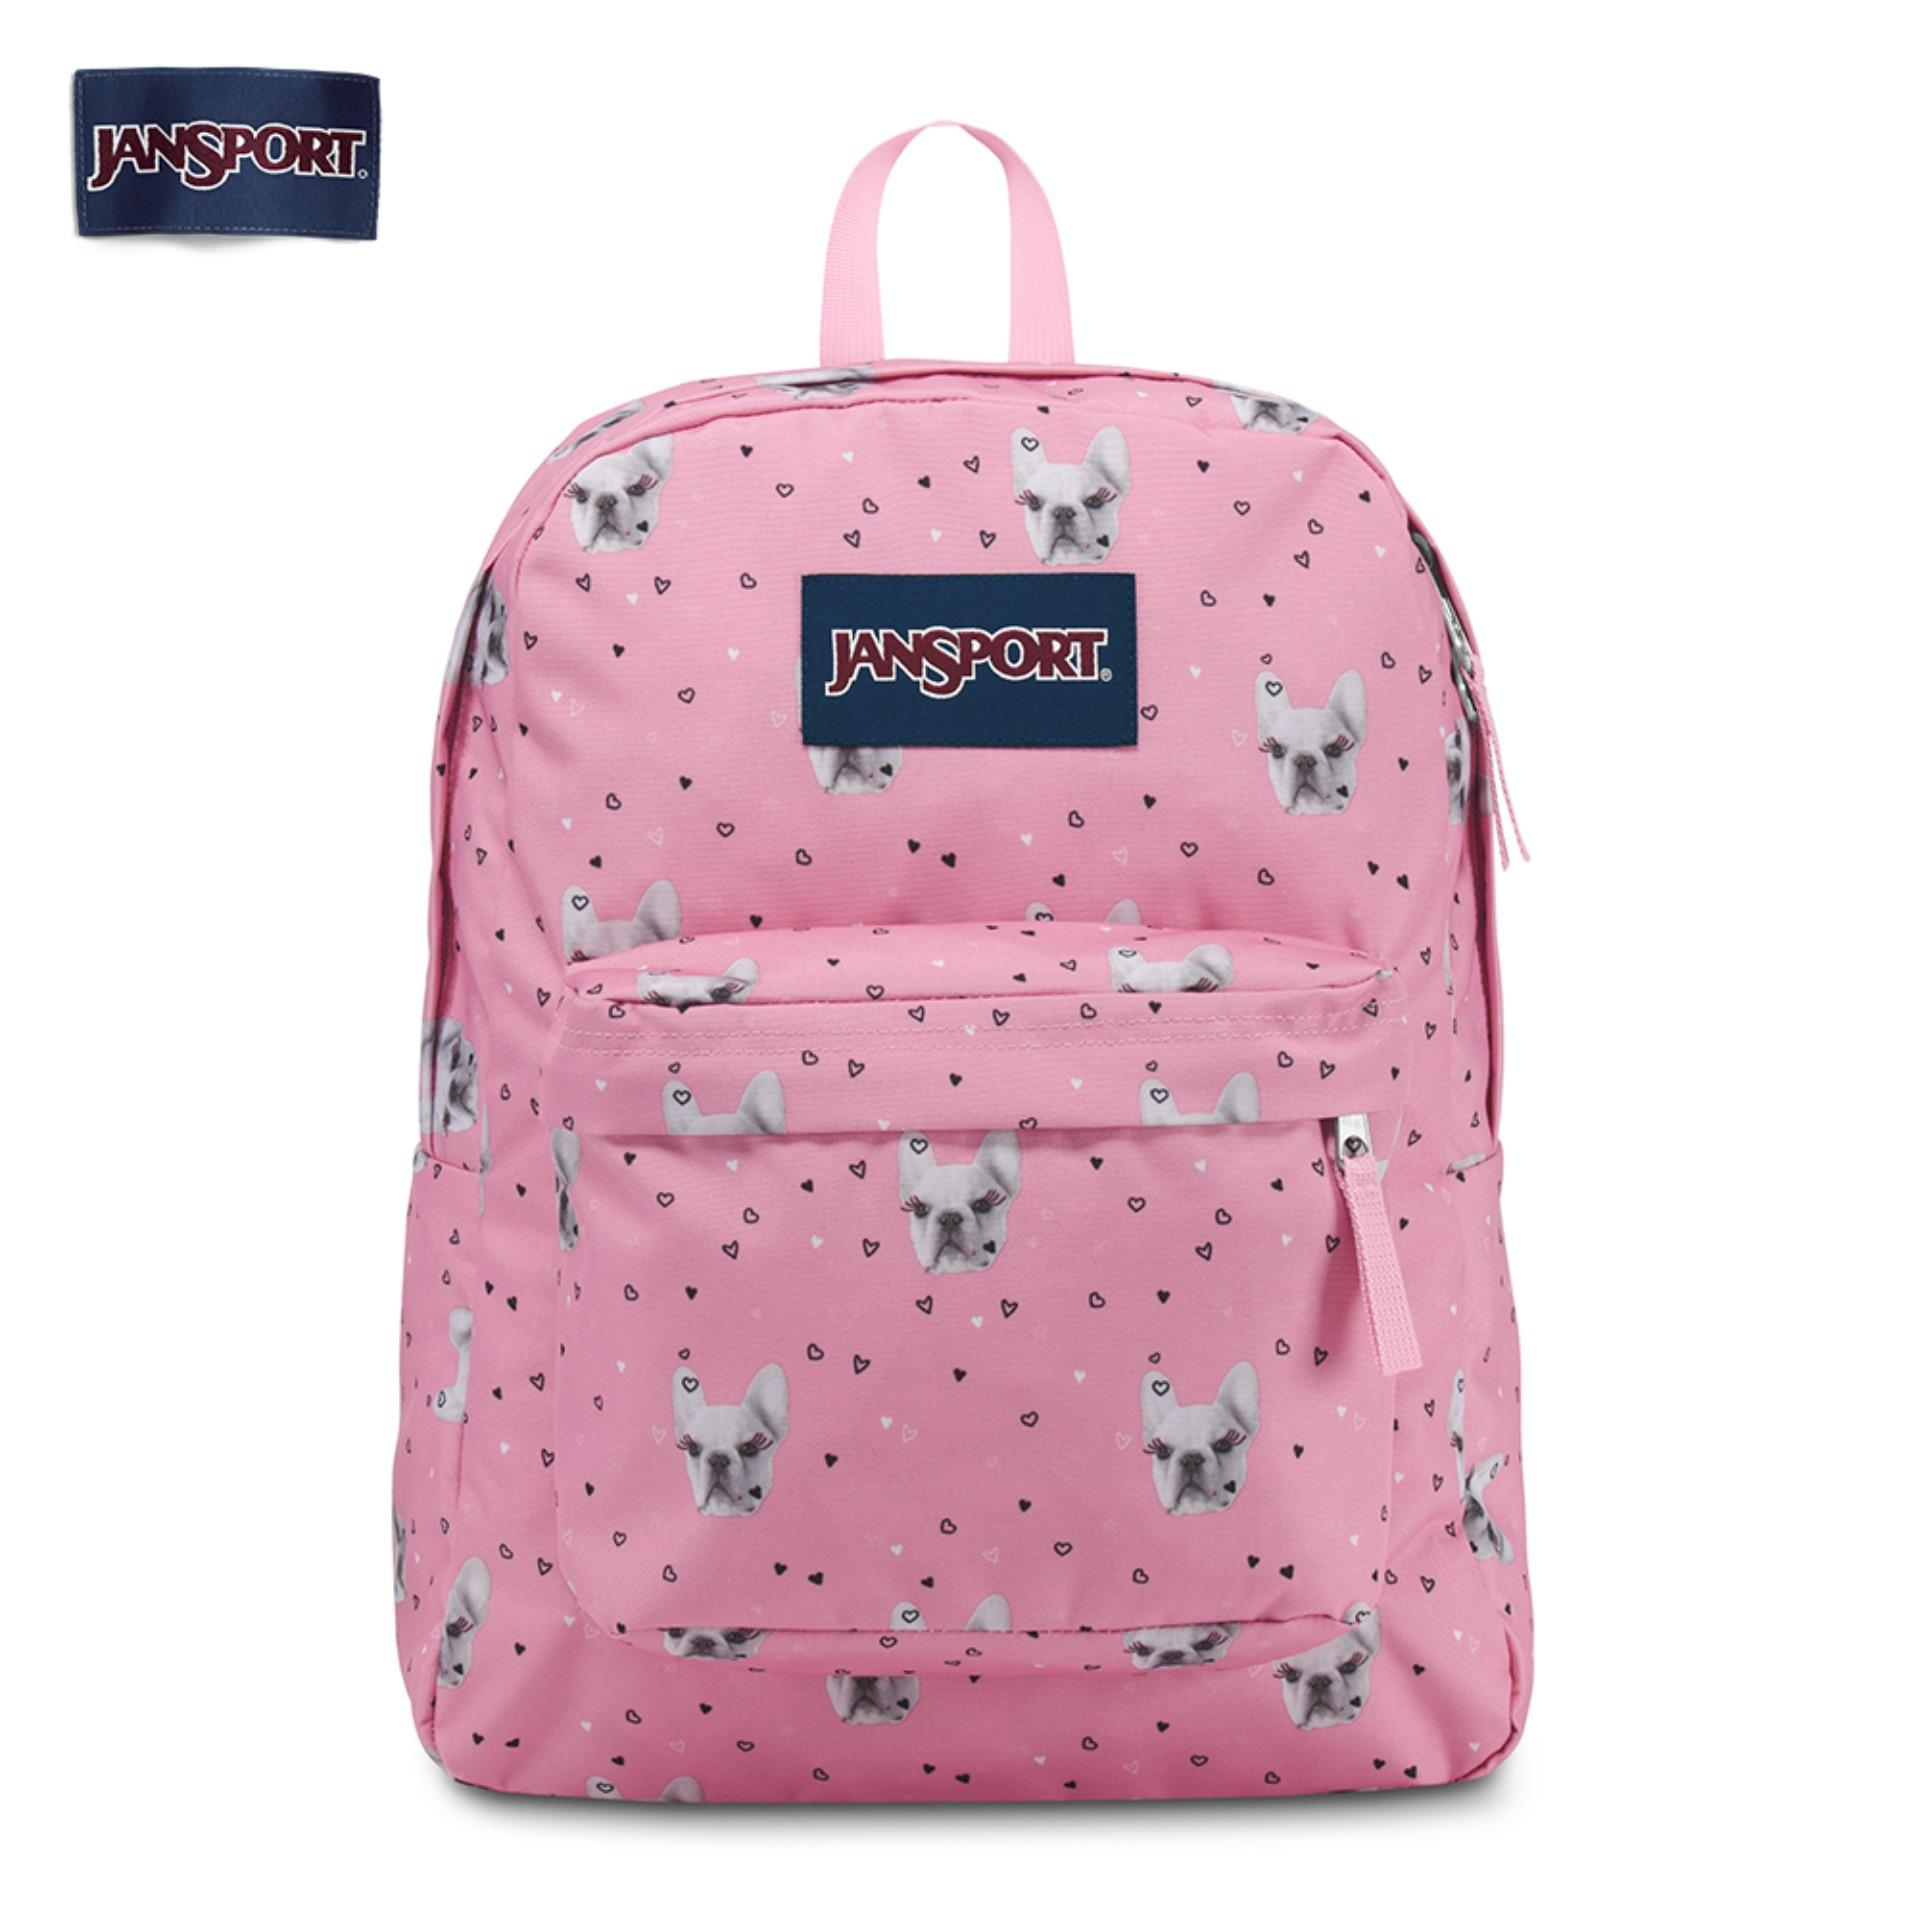 5e32dab15a2 JanSport Womens Classic Superbreak T501 Backpack 600 Denier Polyester  Backpack